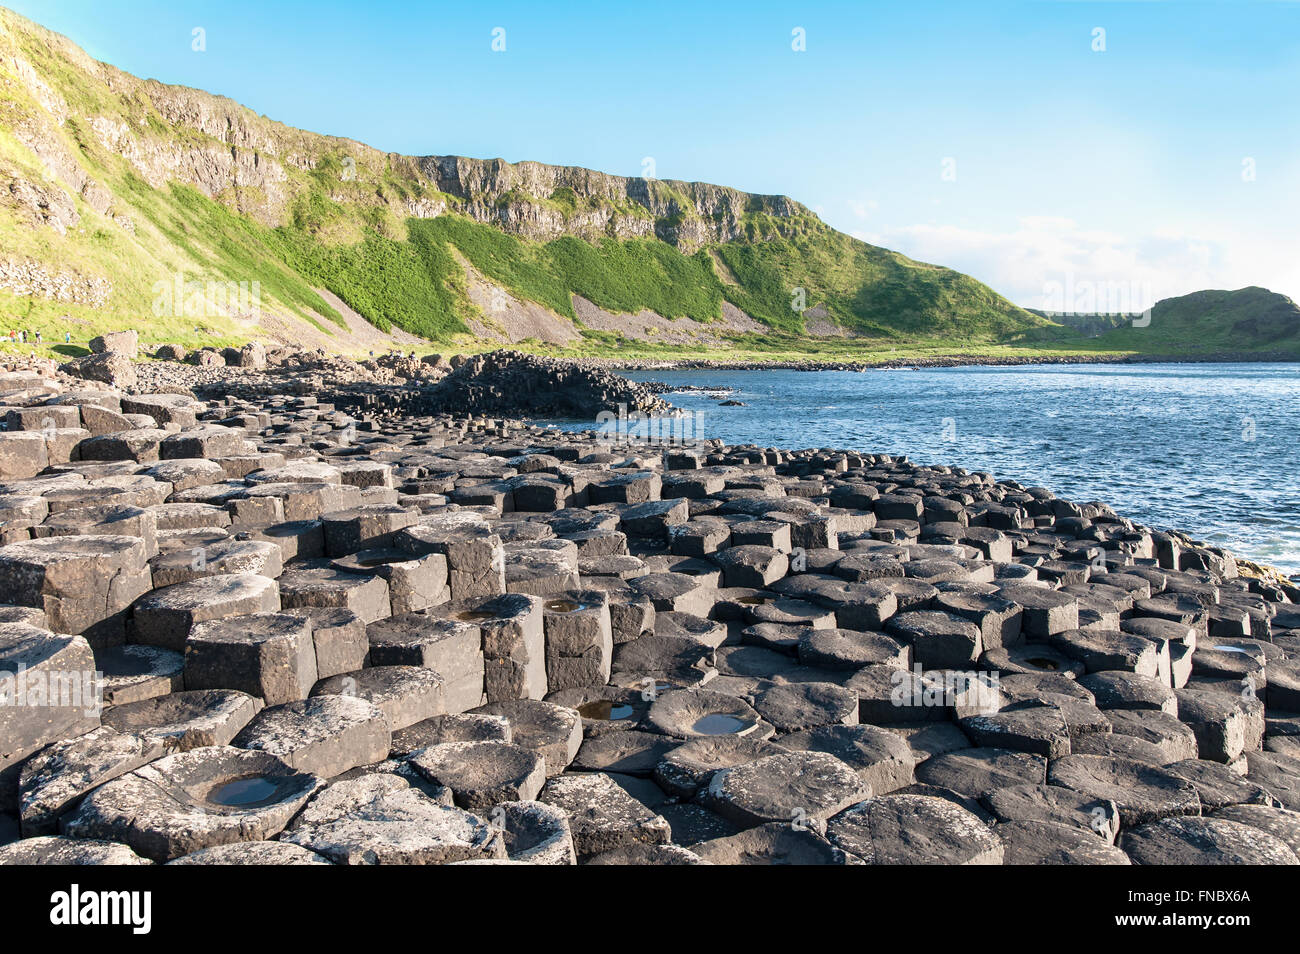 Giants Causeway, unique geological formation of rocks and cliffs in Antrim County, Northern Ireland, in sunset light - Stock Image